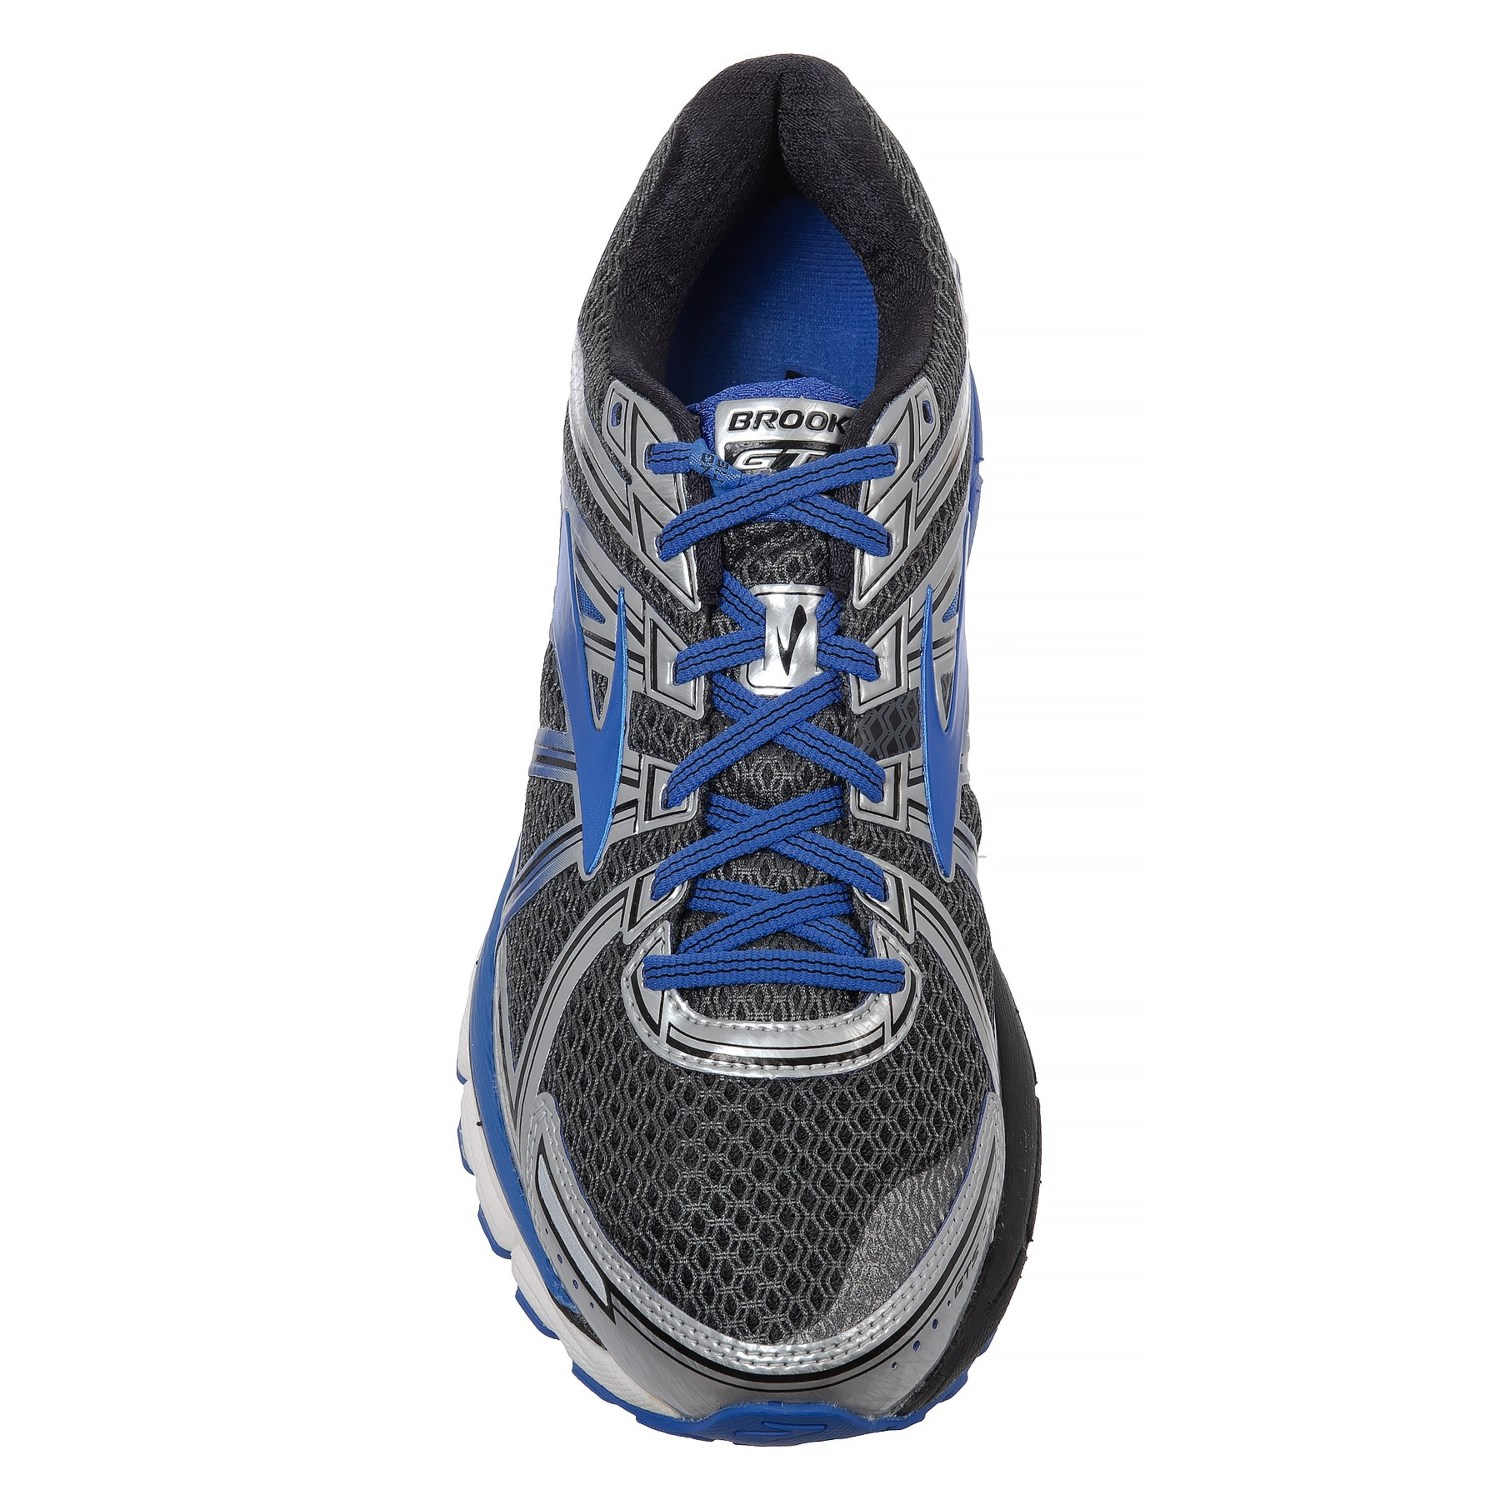 7db76877d2255 Brooks Adrenaline GTS 17 Running Shoes (For Men)